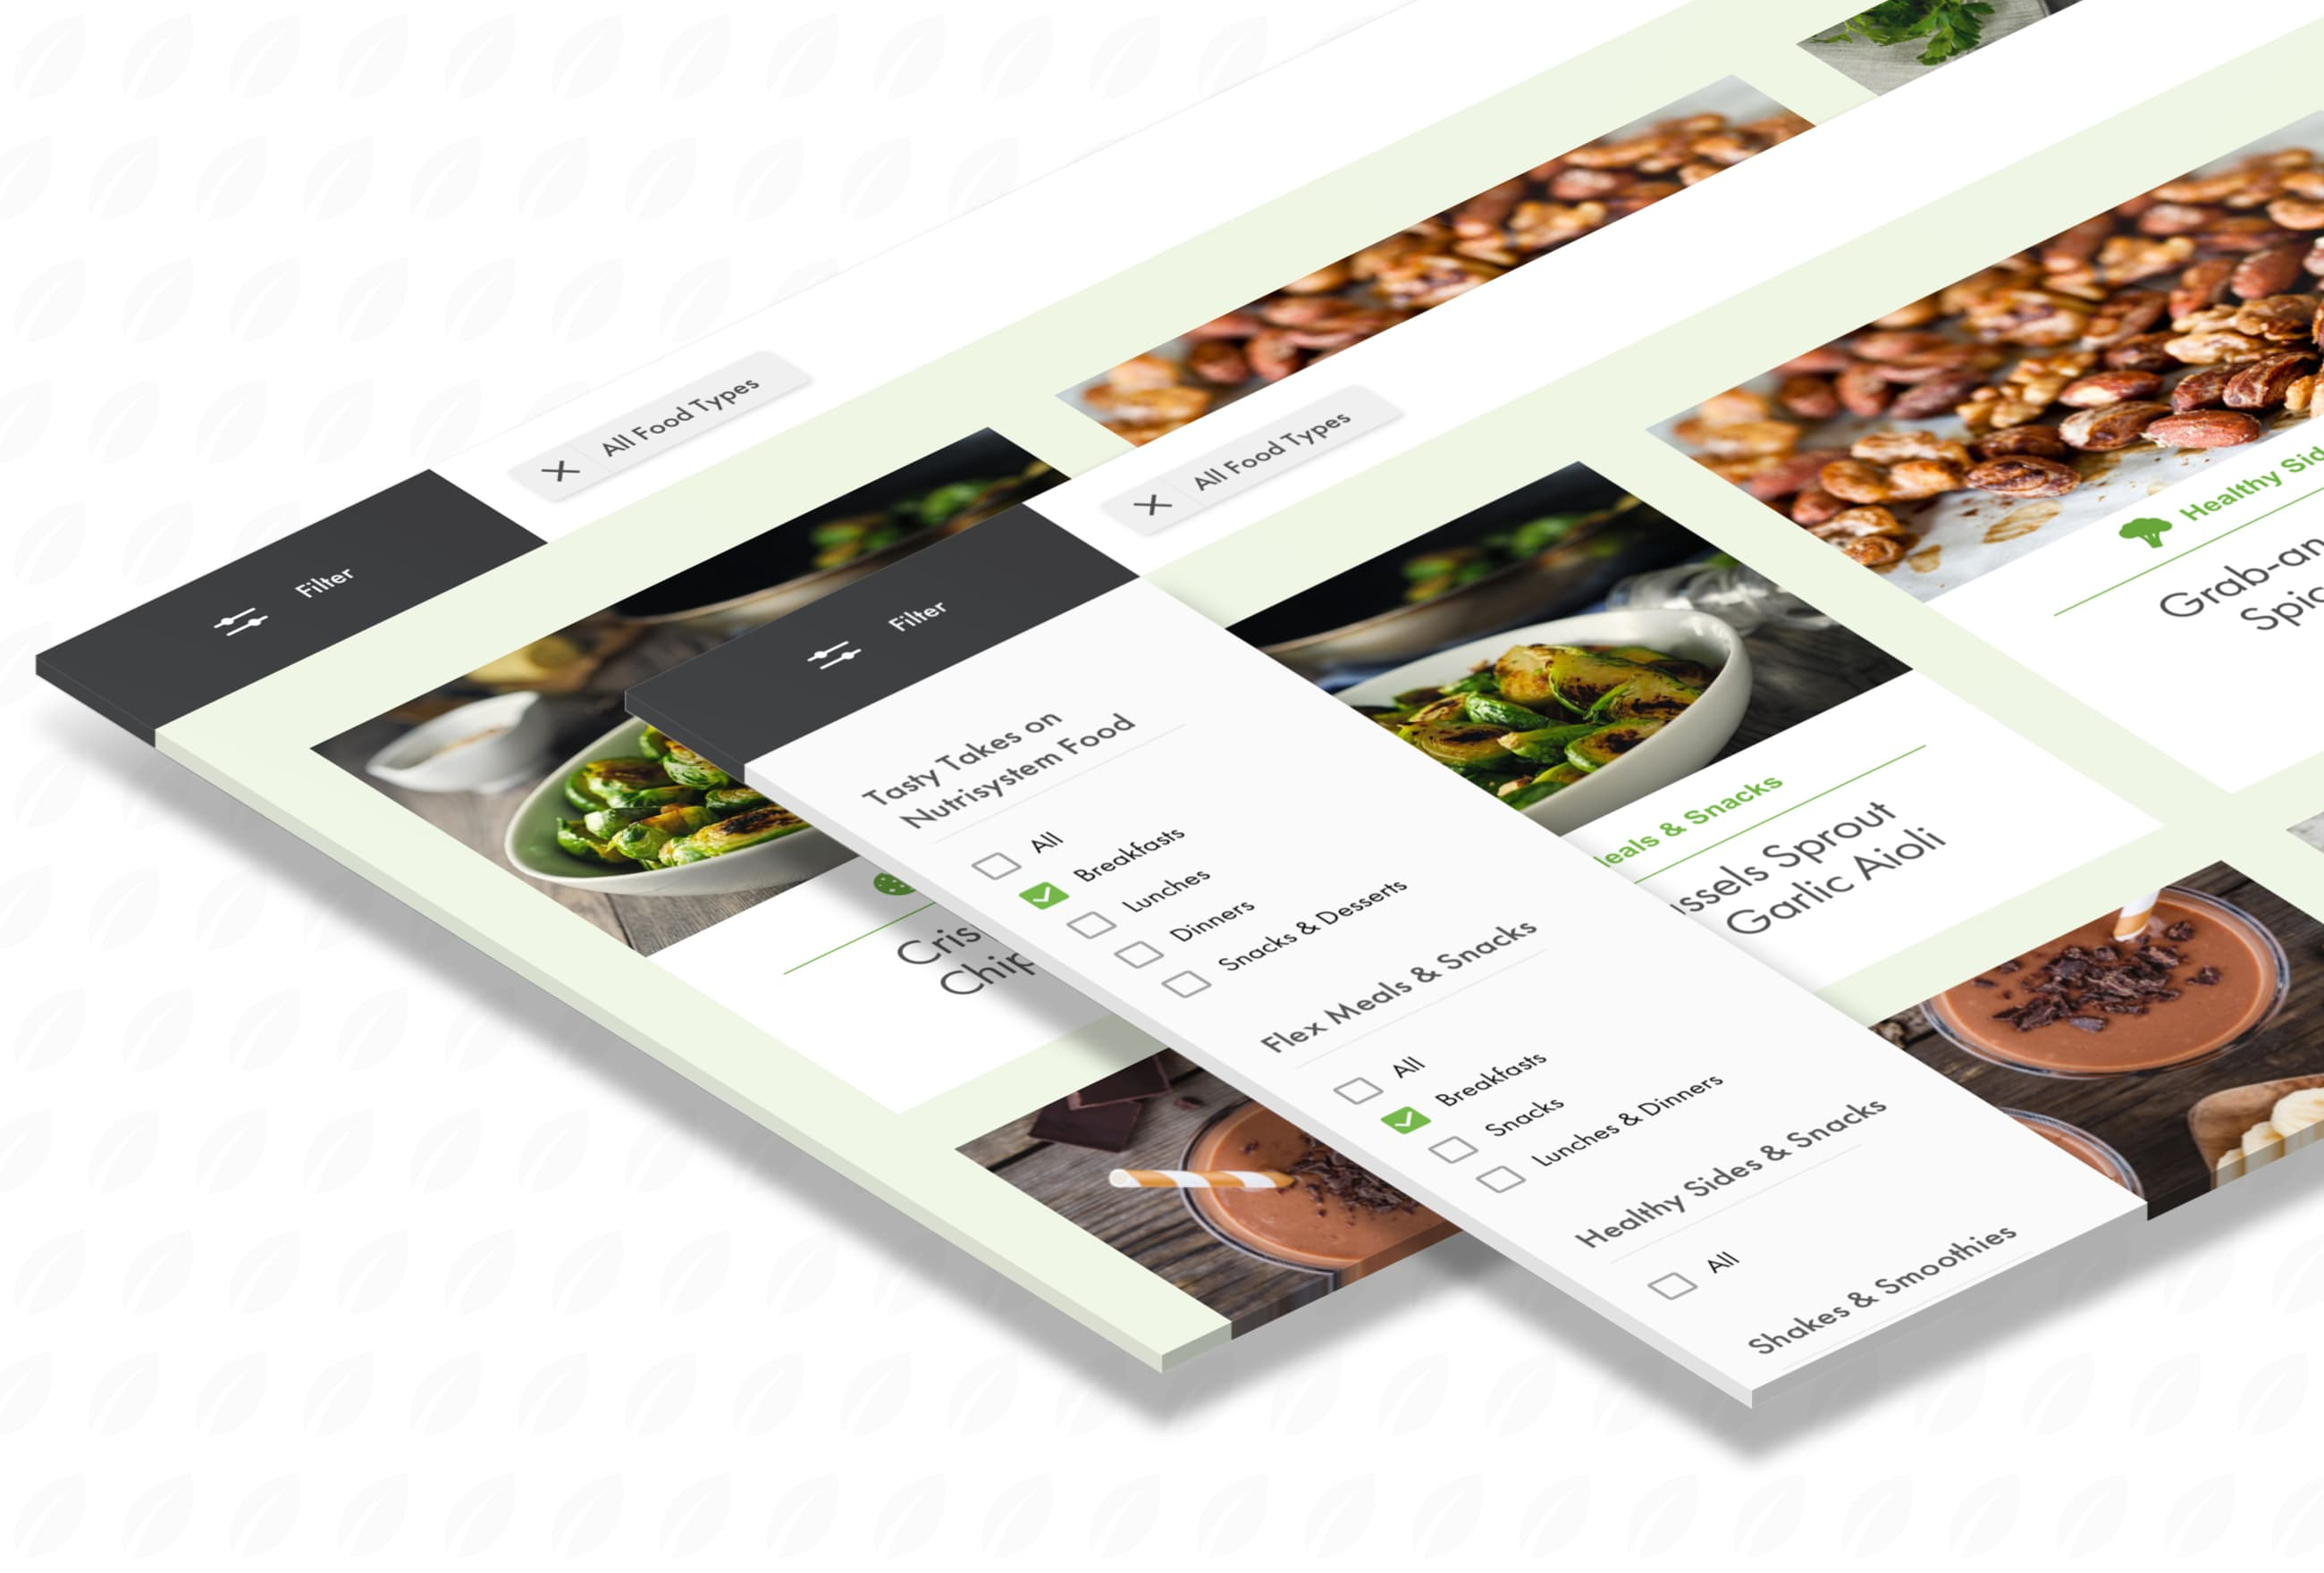 King Design Nutrisystem The Leaf Blog Content Recipe Filter Flyout Menu